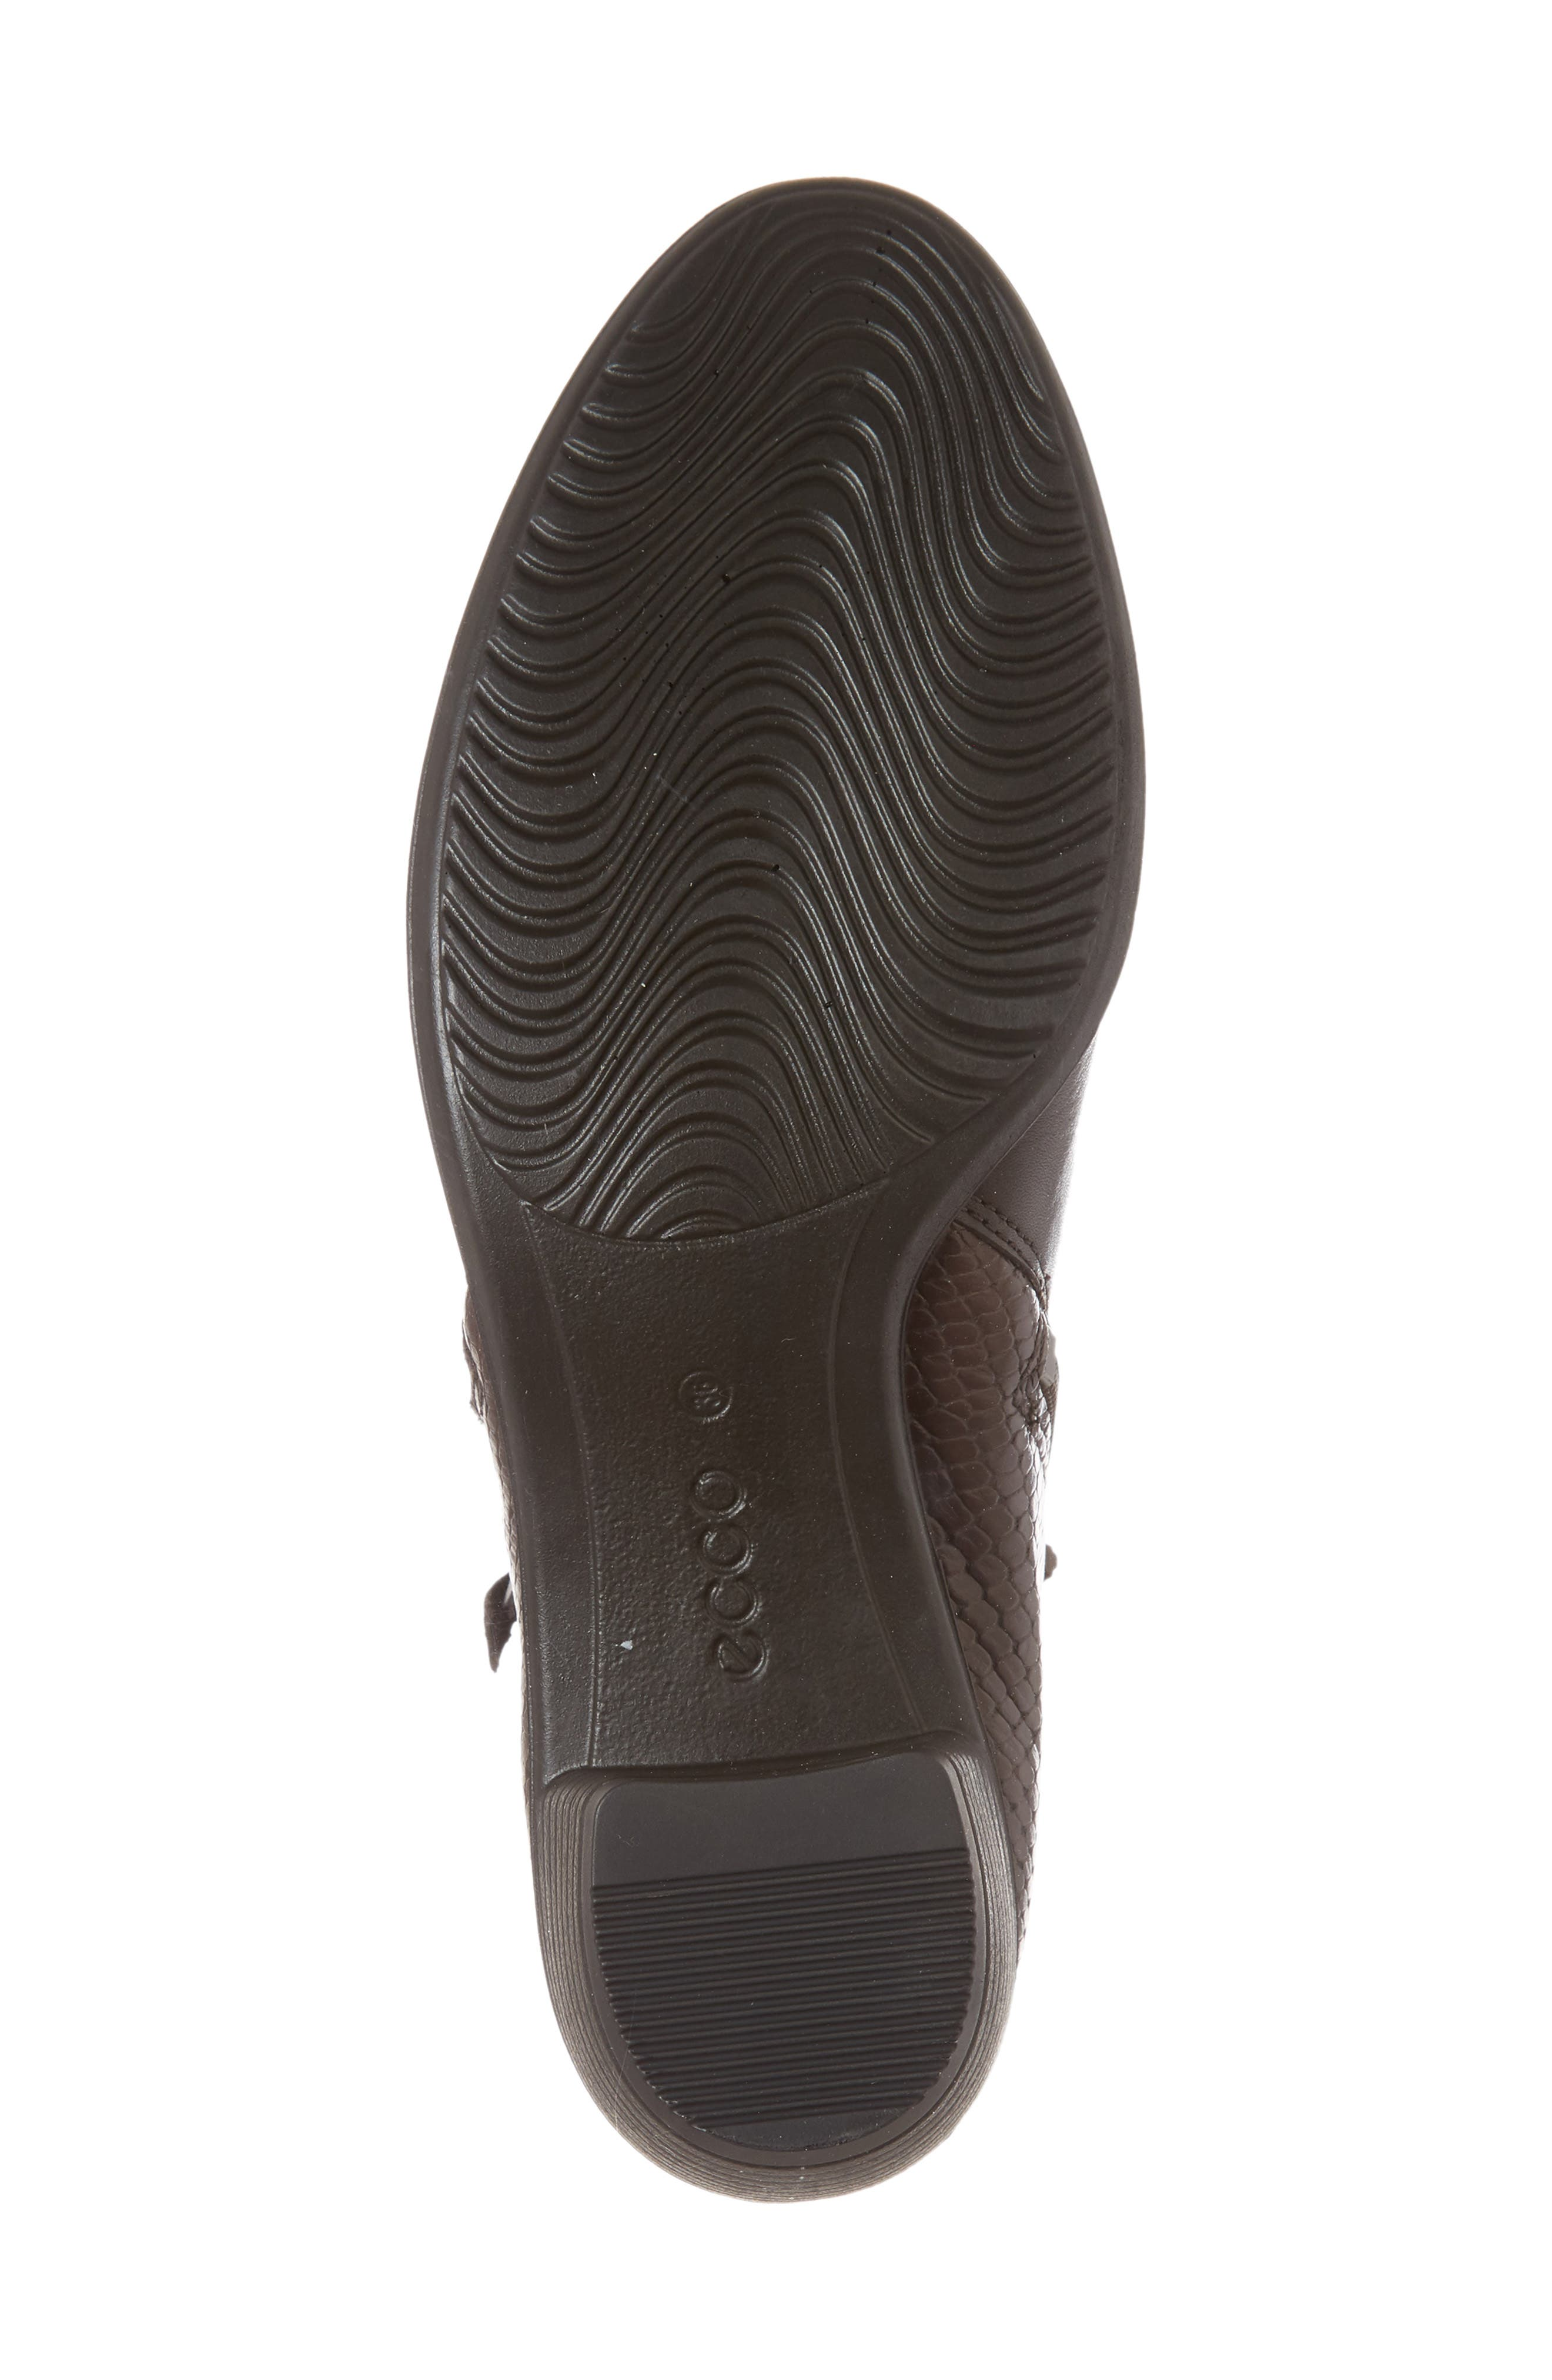 'Touch' Zip Bootie,                             Alternate thumbnail 6, color,                             Coffee Leather